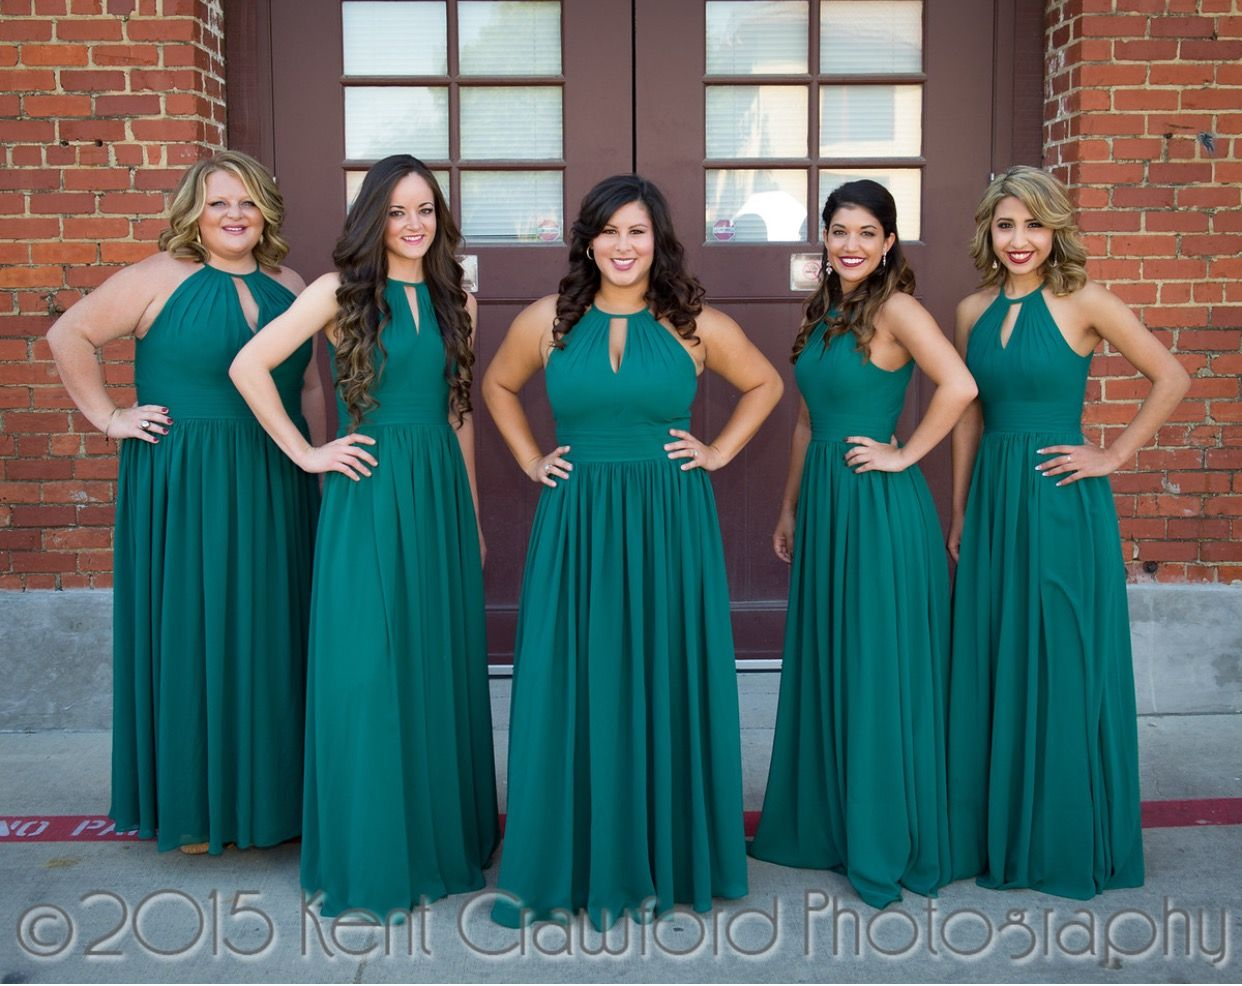 Cherish bridesmaid dress bodies wedding and weddings azazie cherish bridesmaid dress ombrellifo Gallery